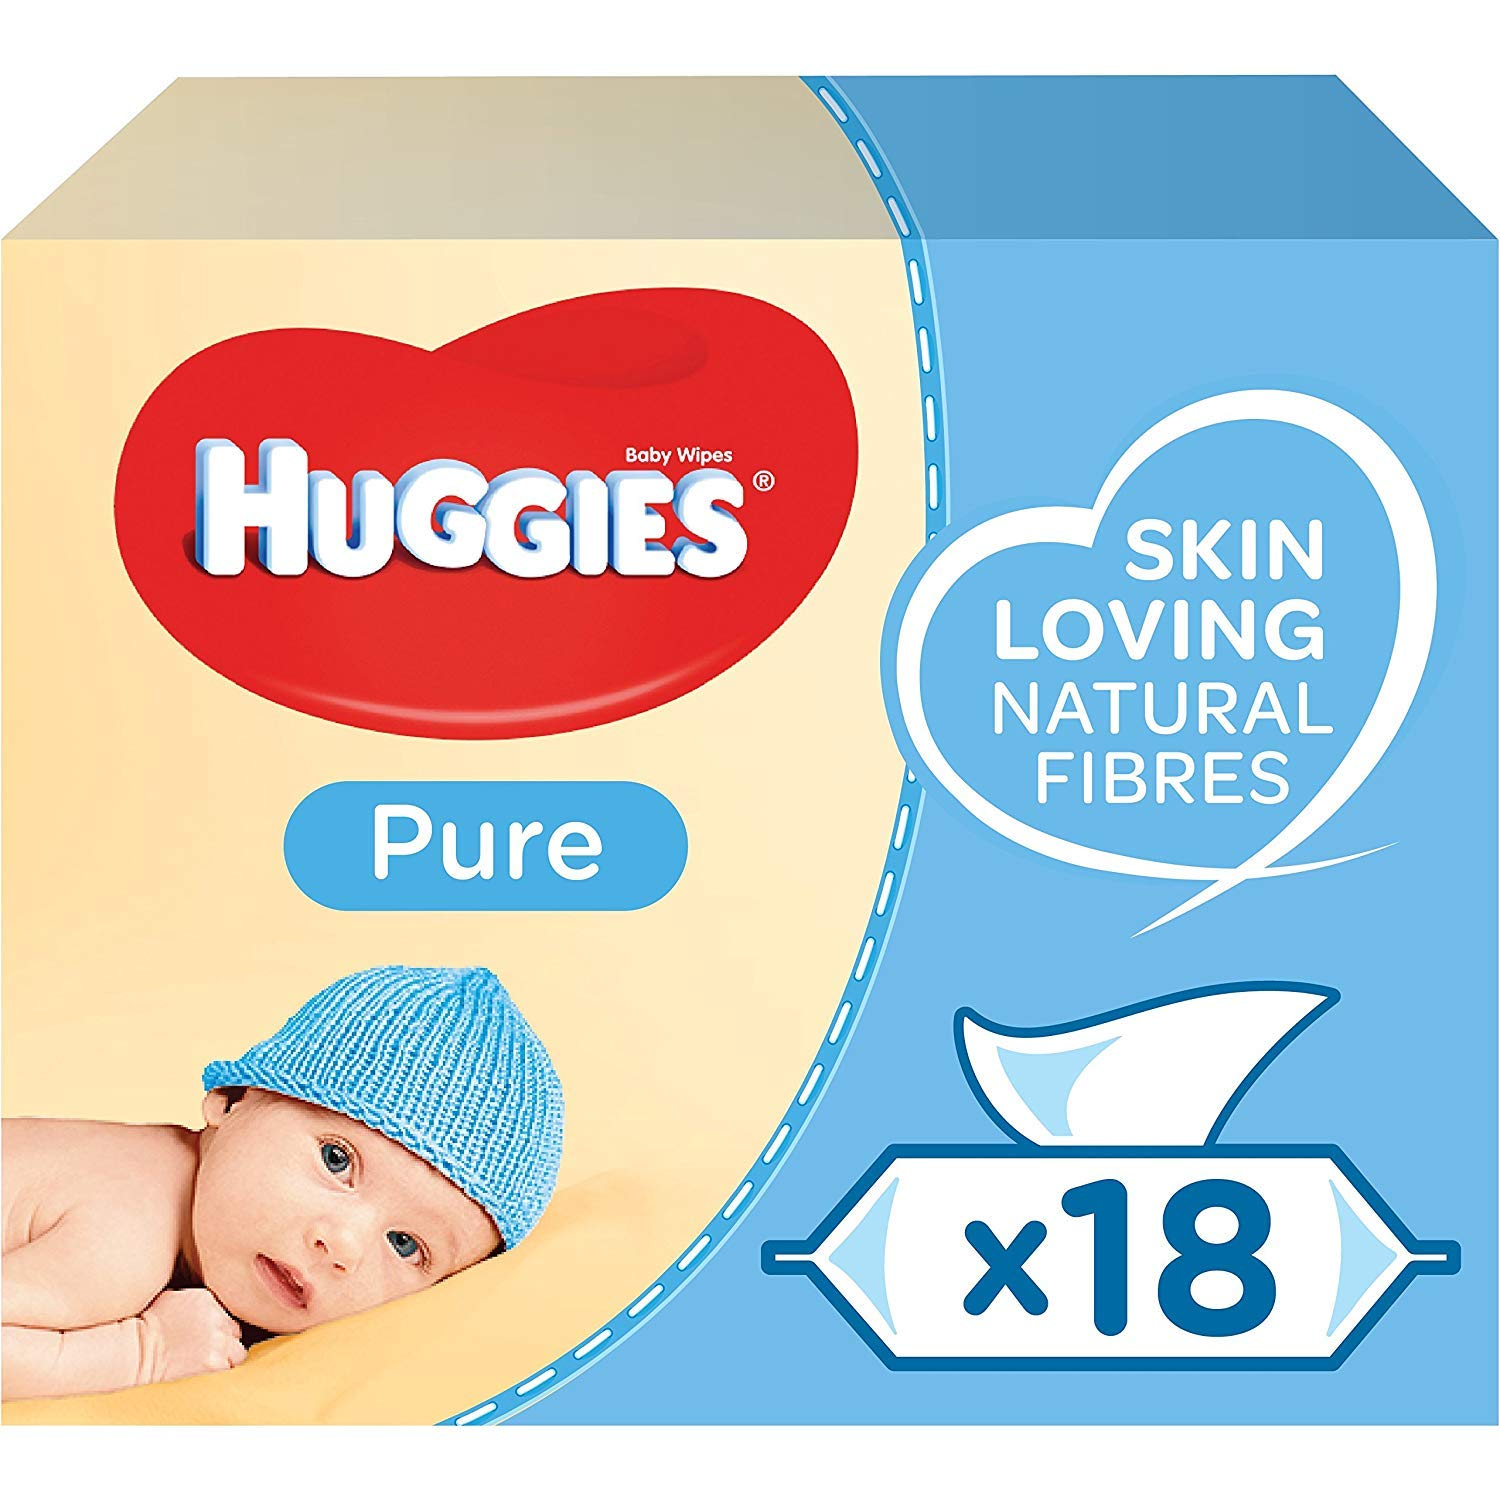 Huggies Pure Baby Wipes, 18 Packs (1008 Wipes) £9.75 at Amazon